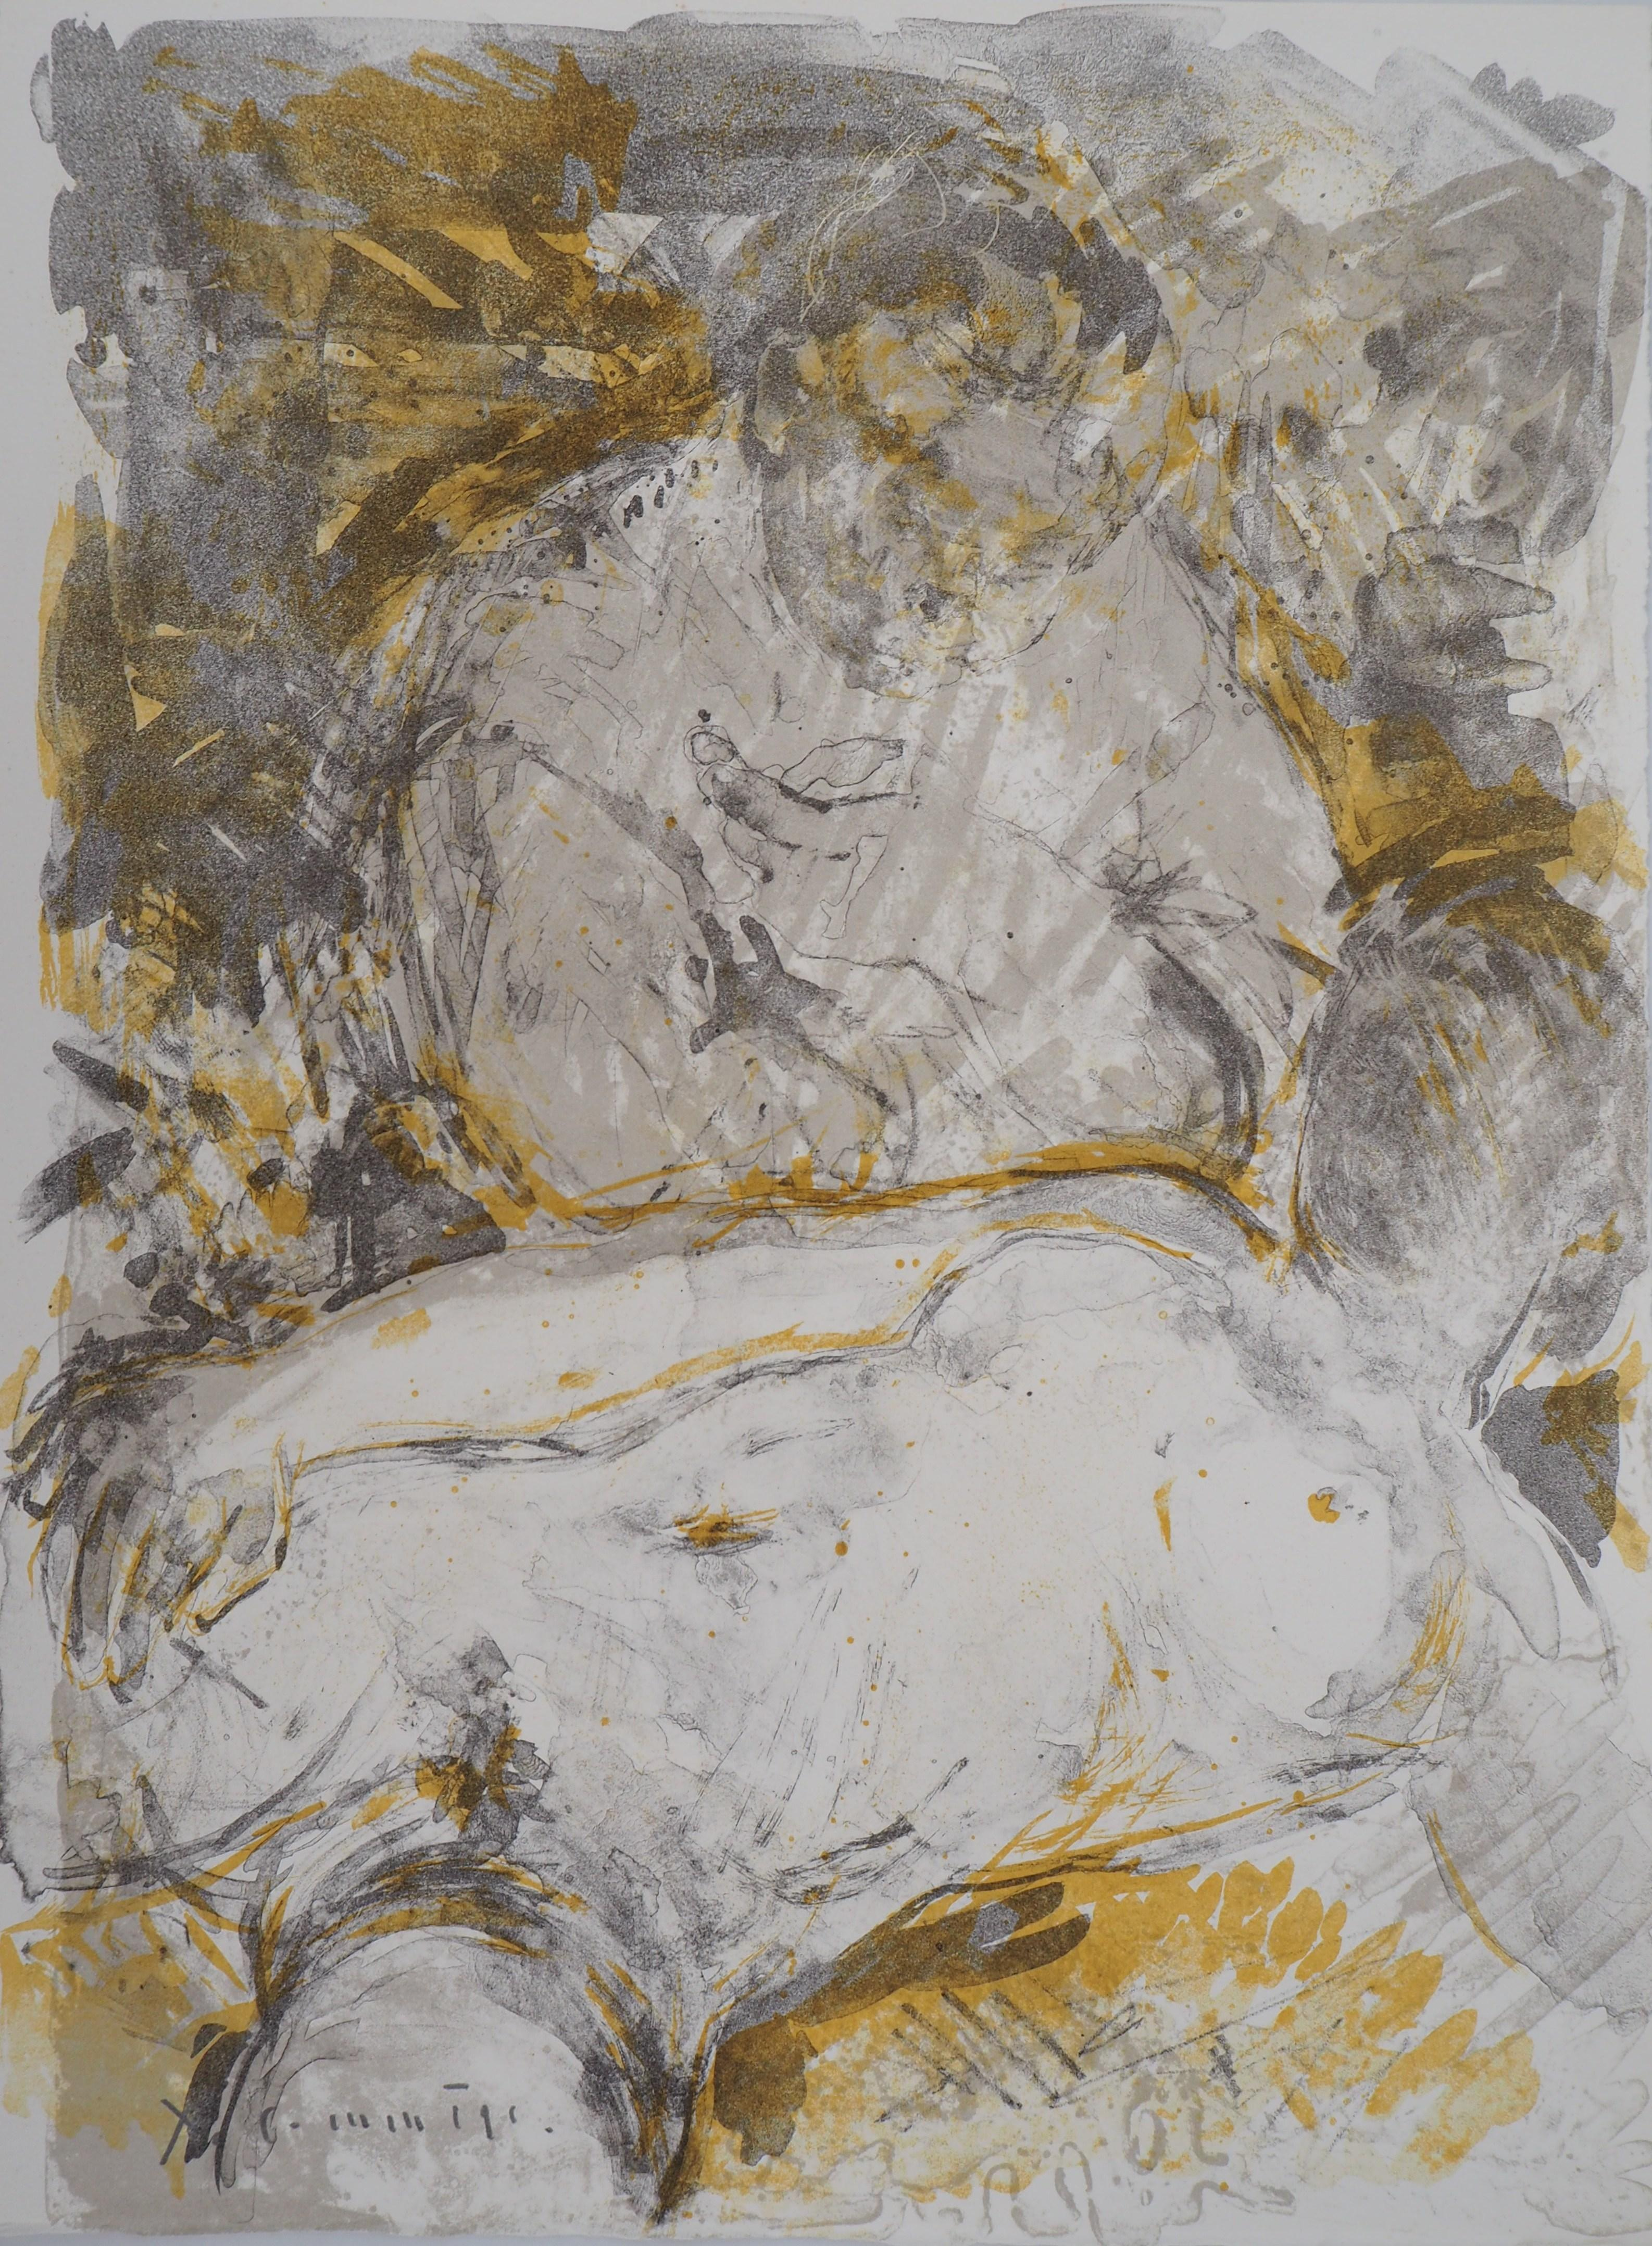 Nude in the Barn - Original handsigned lithograph